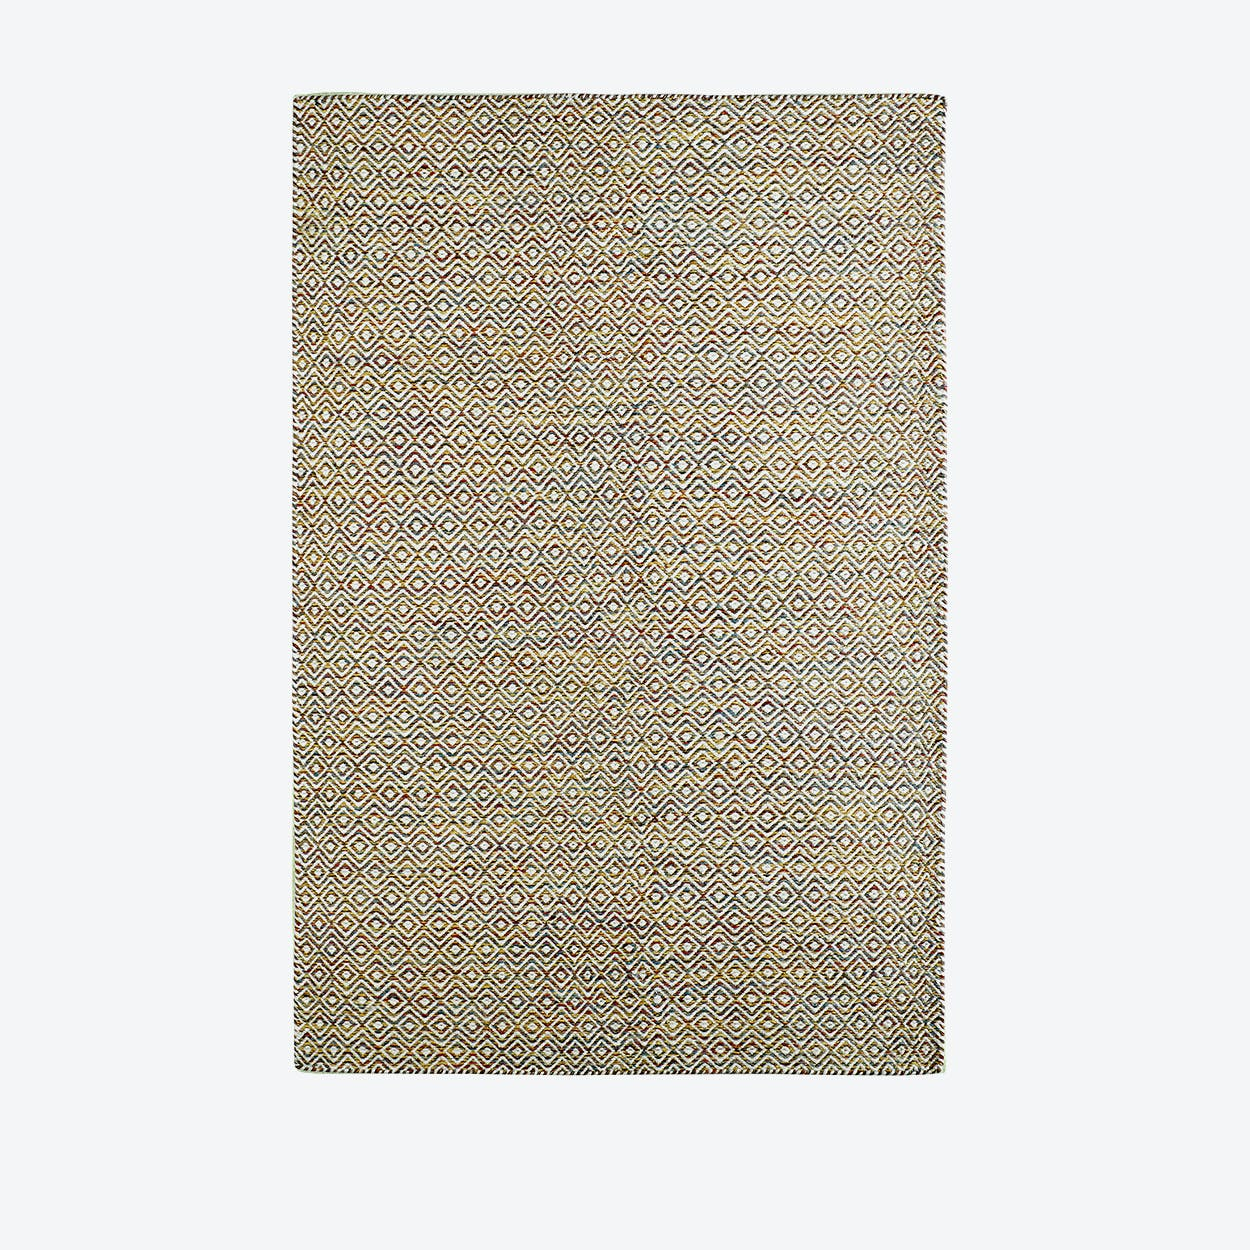 My Jaipur 334 Multi Rug